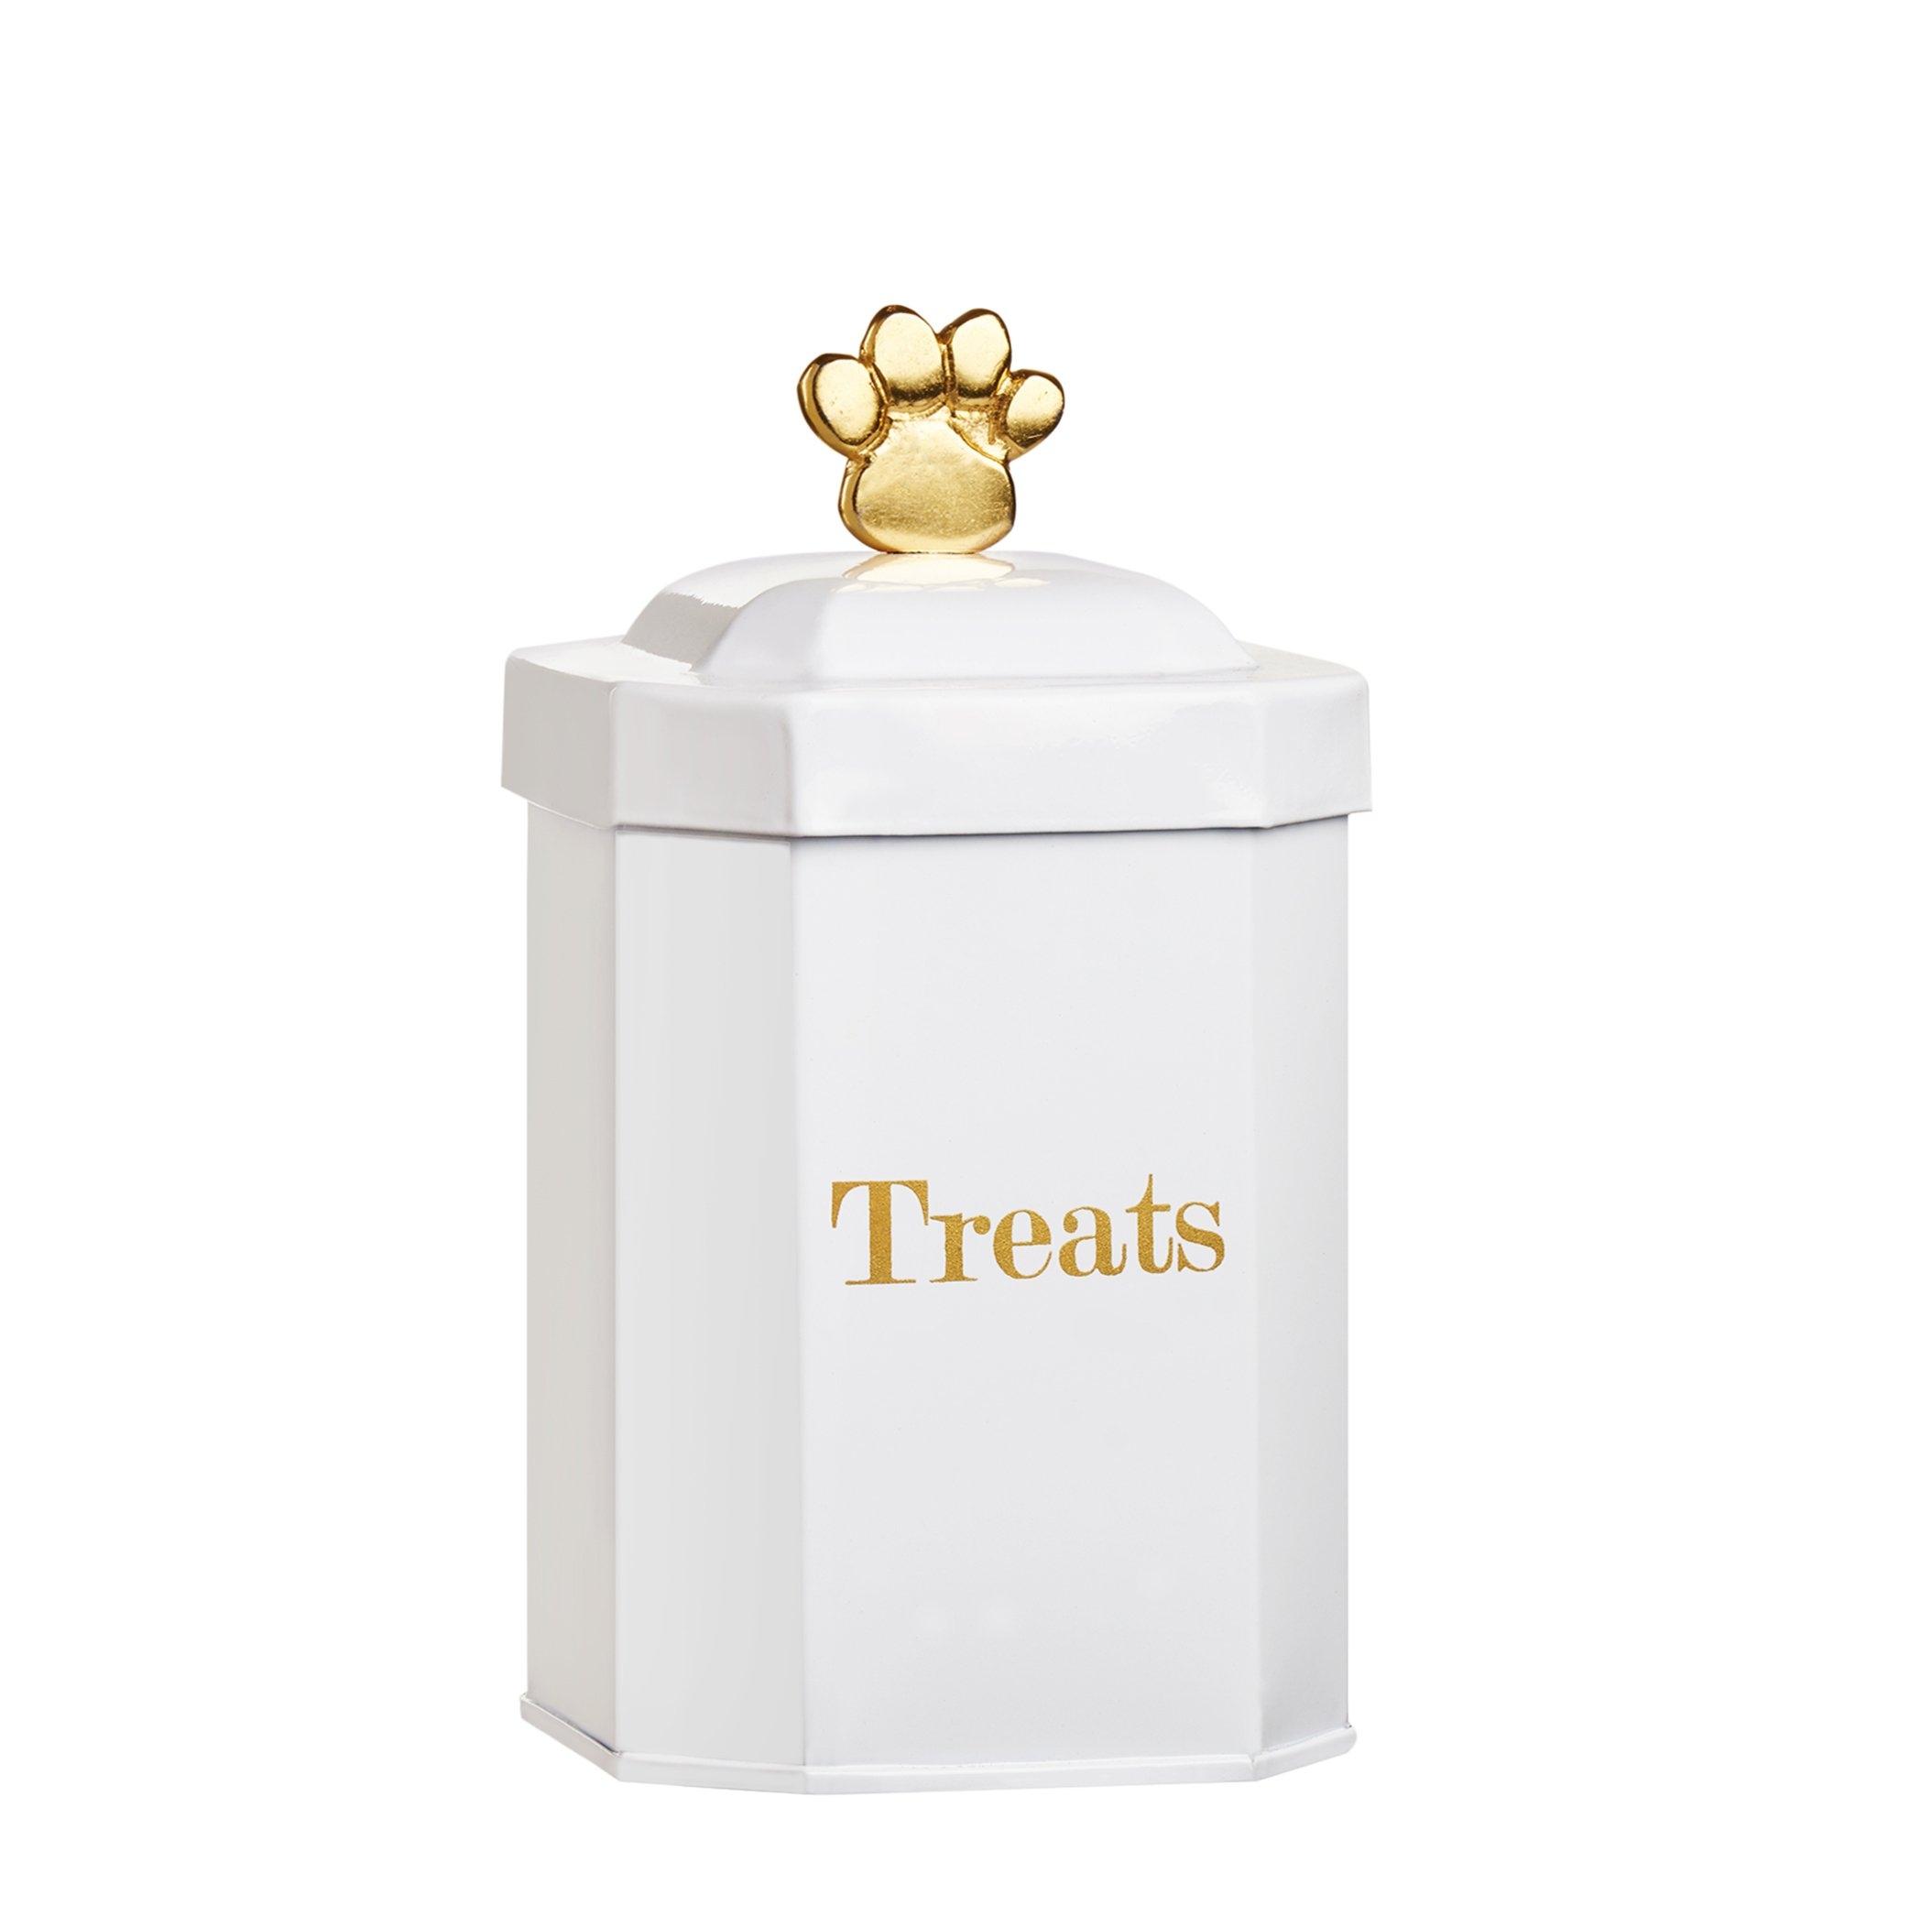 Amici Pet, A5GS040R, Posh Pet Collection Metal Storage Canister, Food Safe, Gold Paw Shaped Handle, Made in India, 36 Ounces, Small